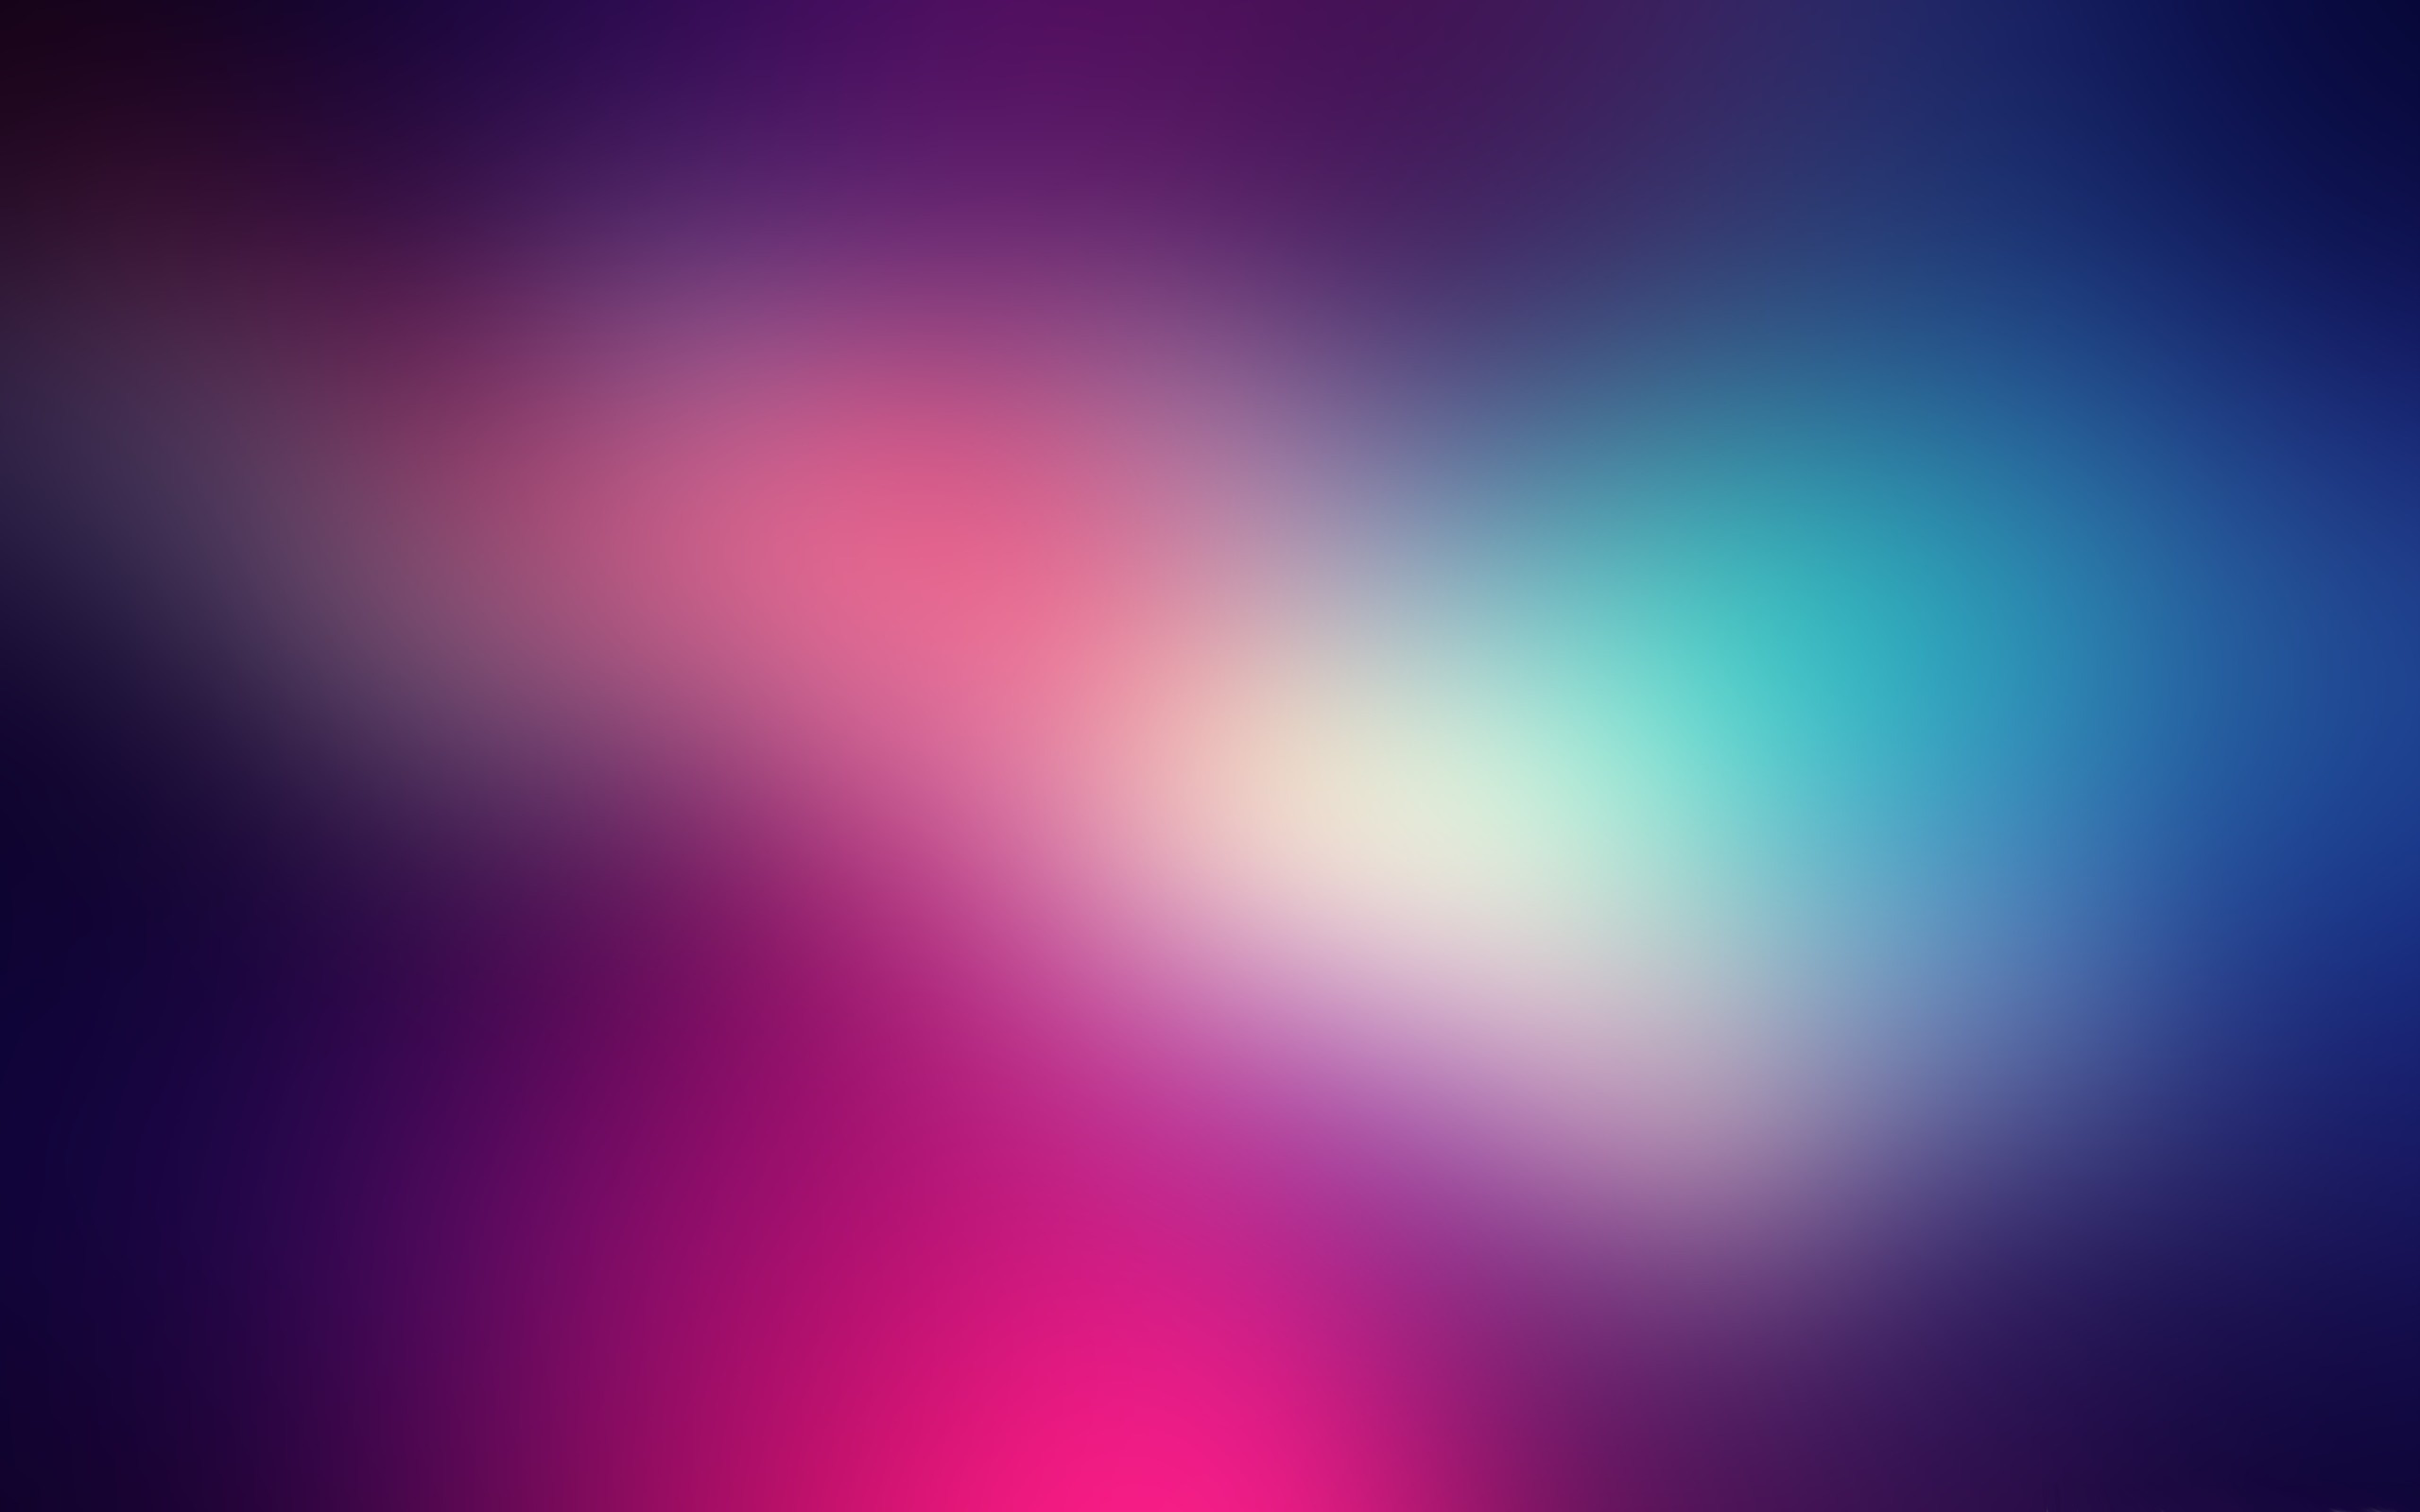 Colorful IOS7 Wallpaper